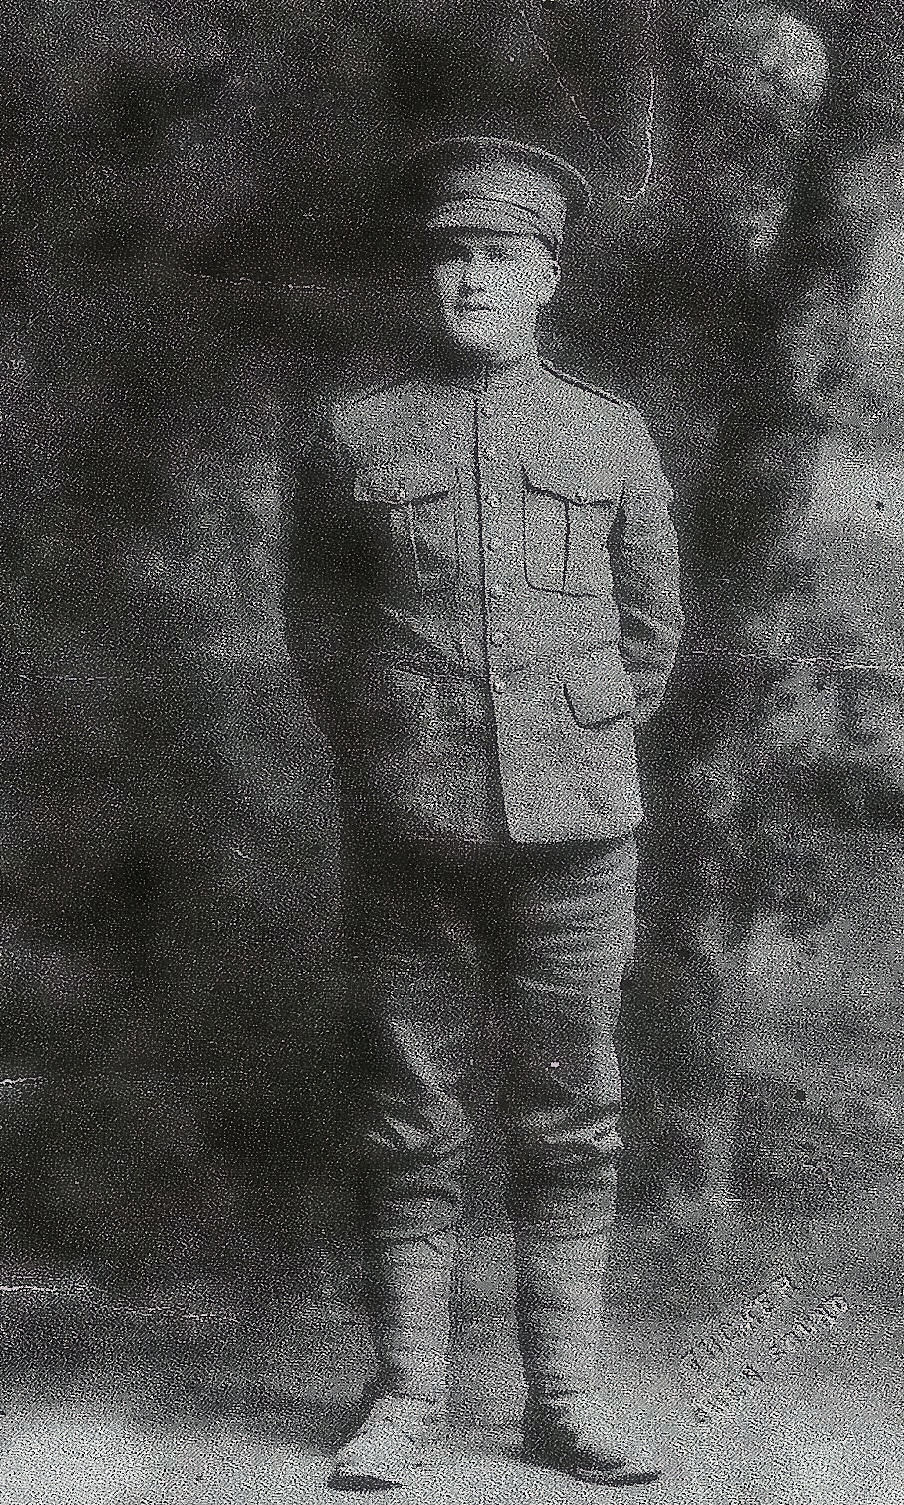 Photo of William Earl Foster – Brother of Private Robert Wellington Foster who was KIA on April 22, 1918 and brother of Sgt. Wilmer Alexander Foster who was KIA in WWII.